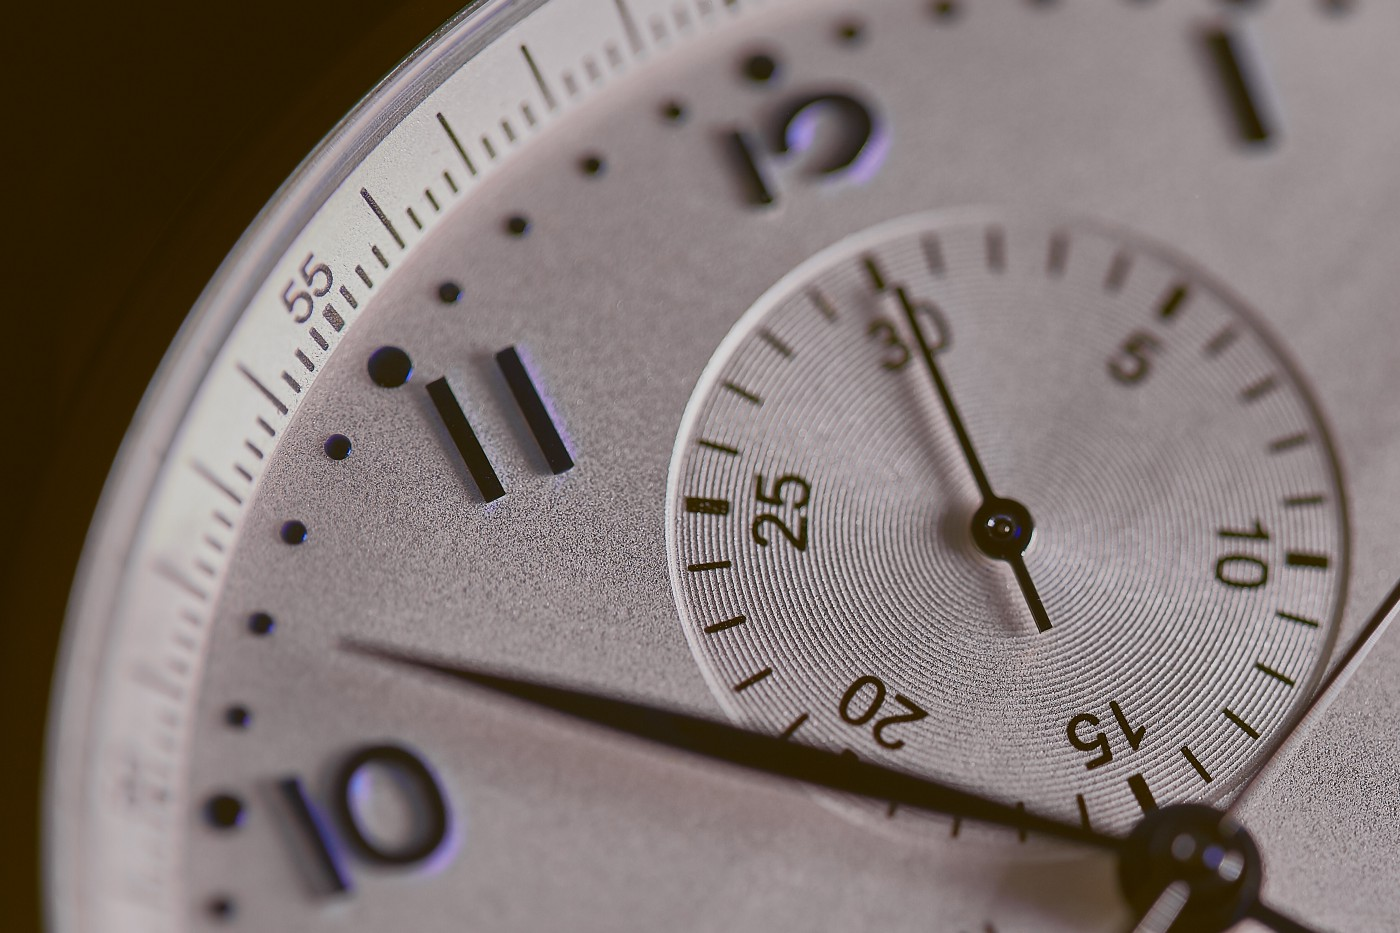 A watch with a minute and second hand. This powerful practice only takes 30 seconds before and after your interactions.